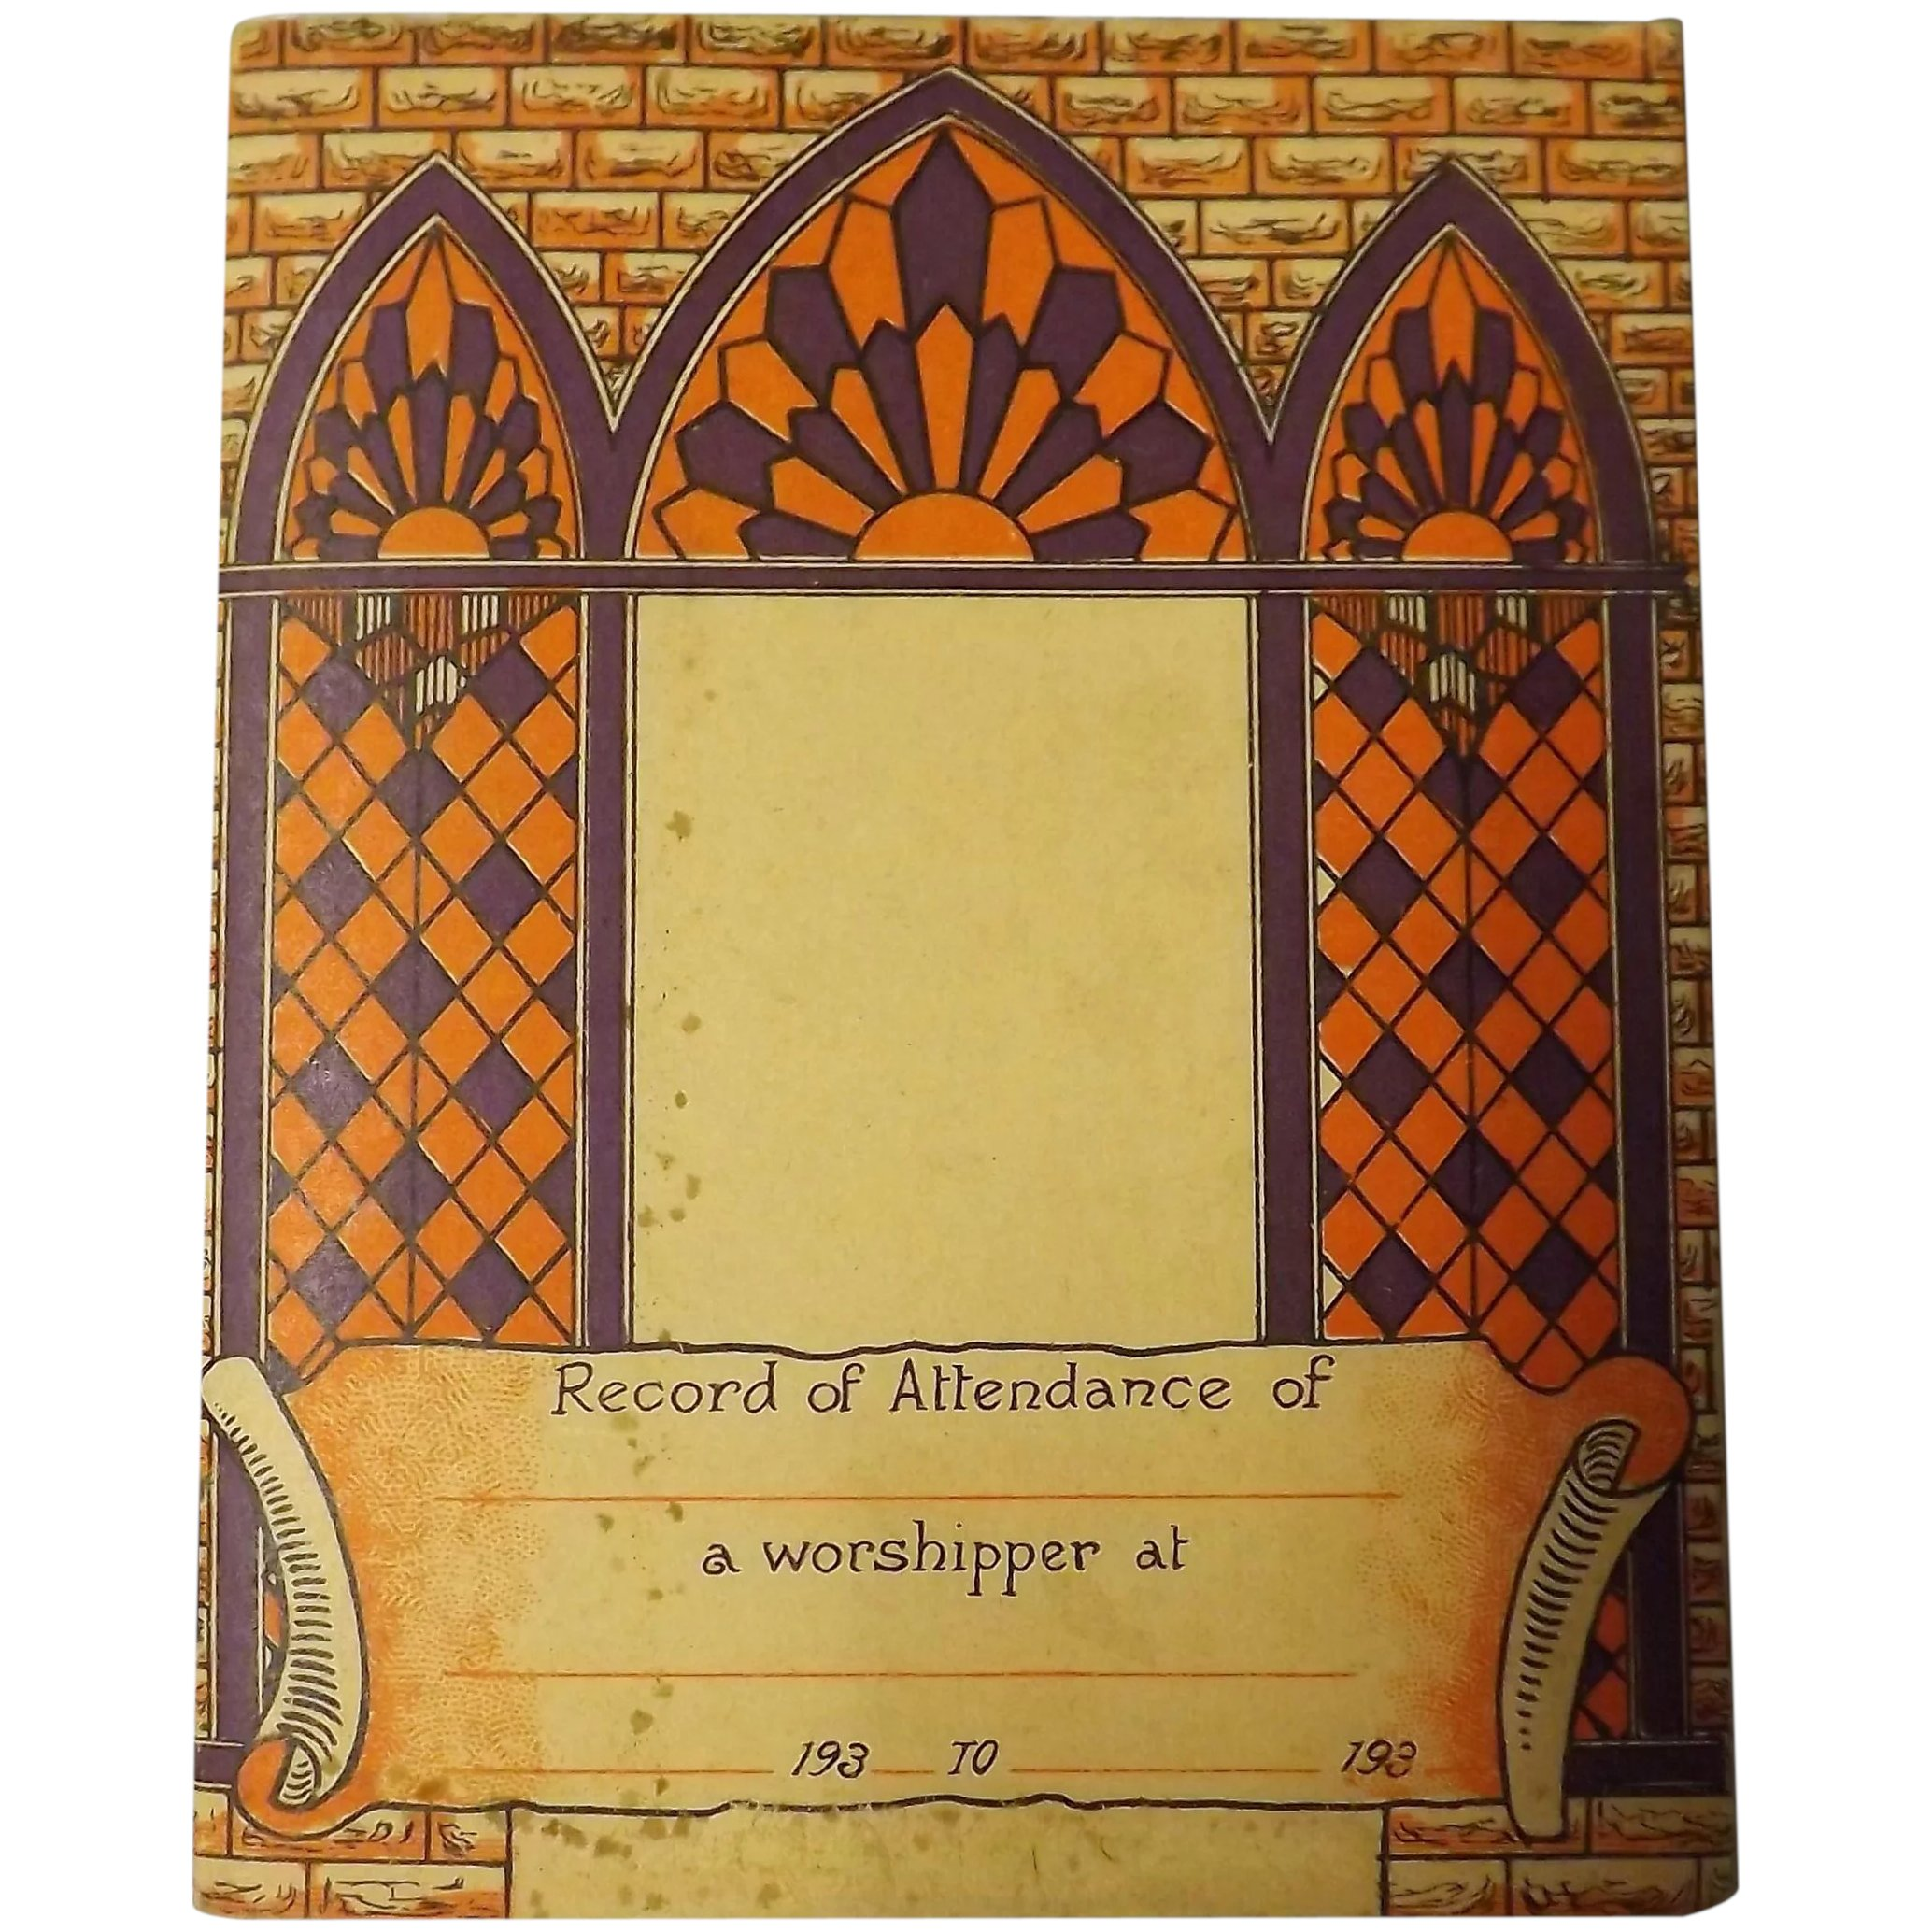 Christian Worshippers Attendance Record Booklet Circa 1930's